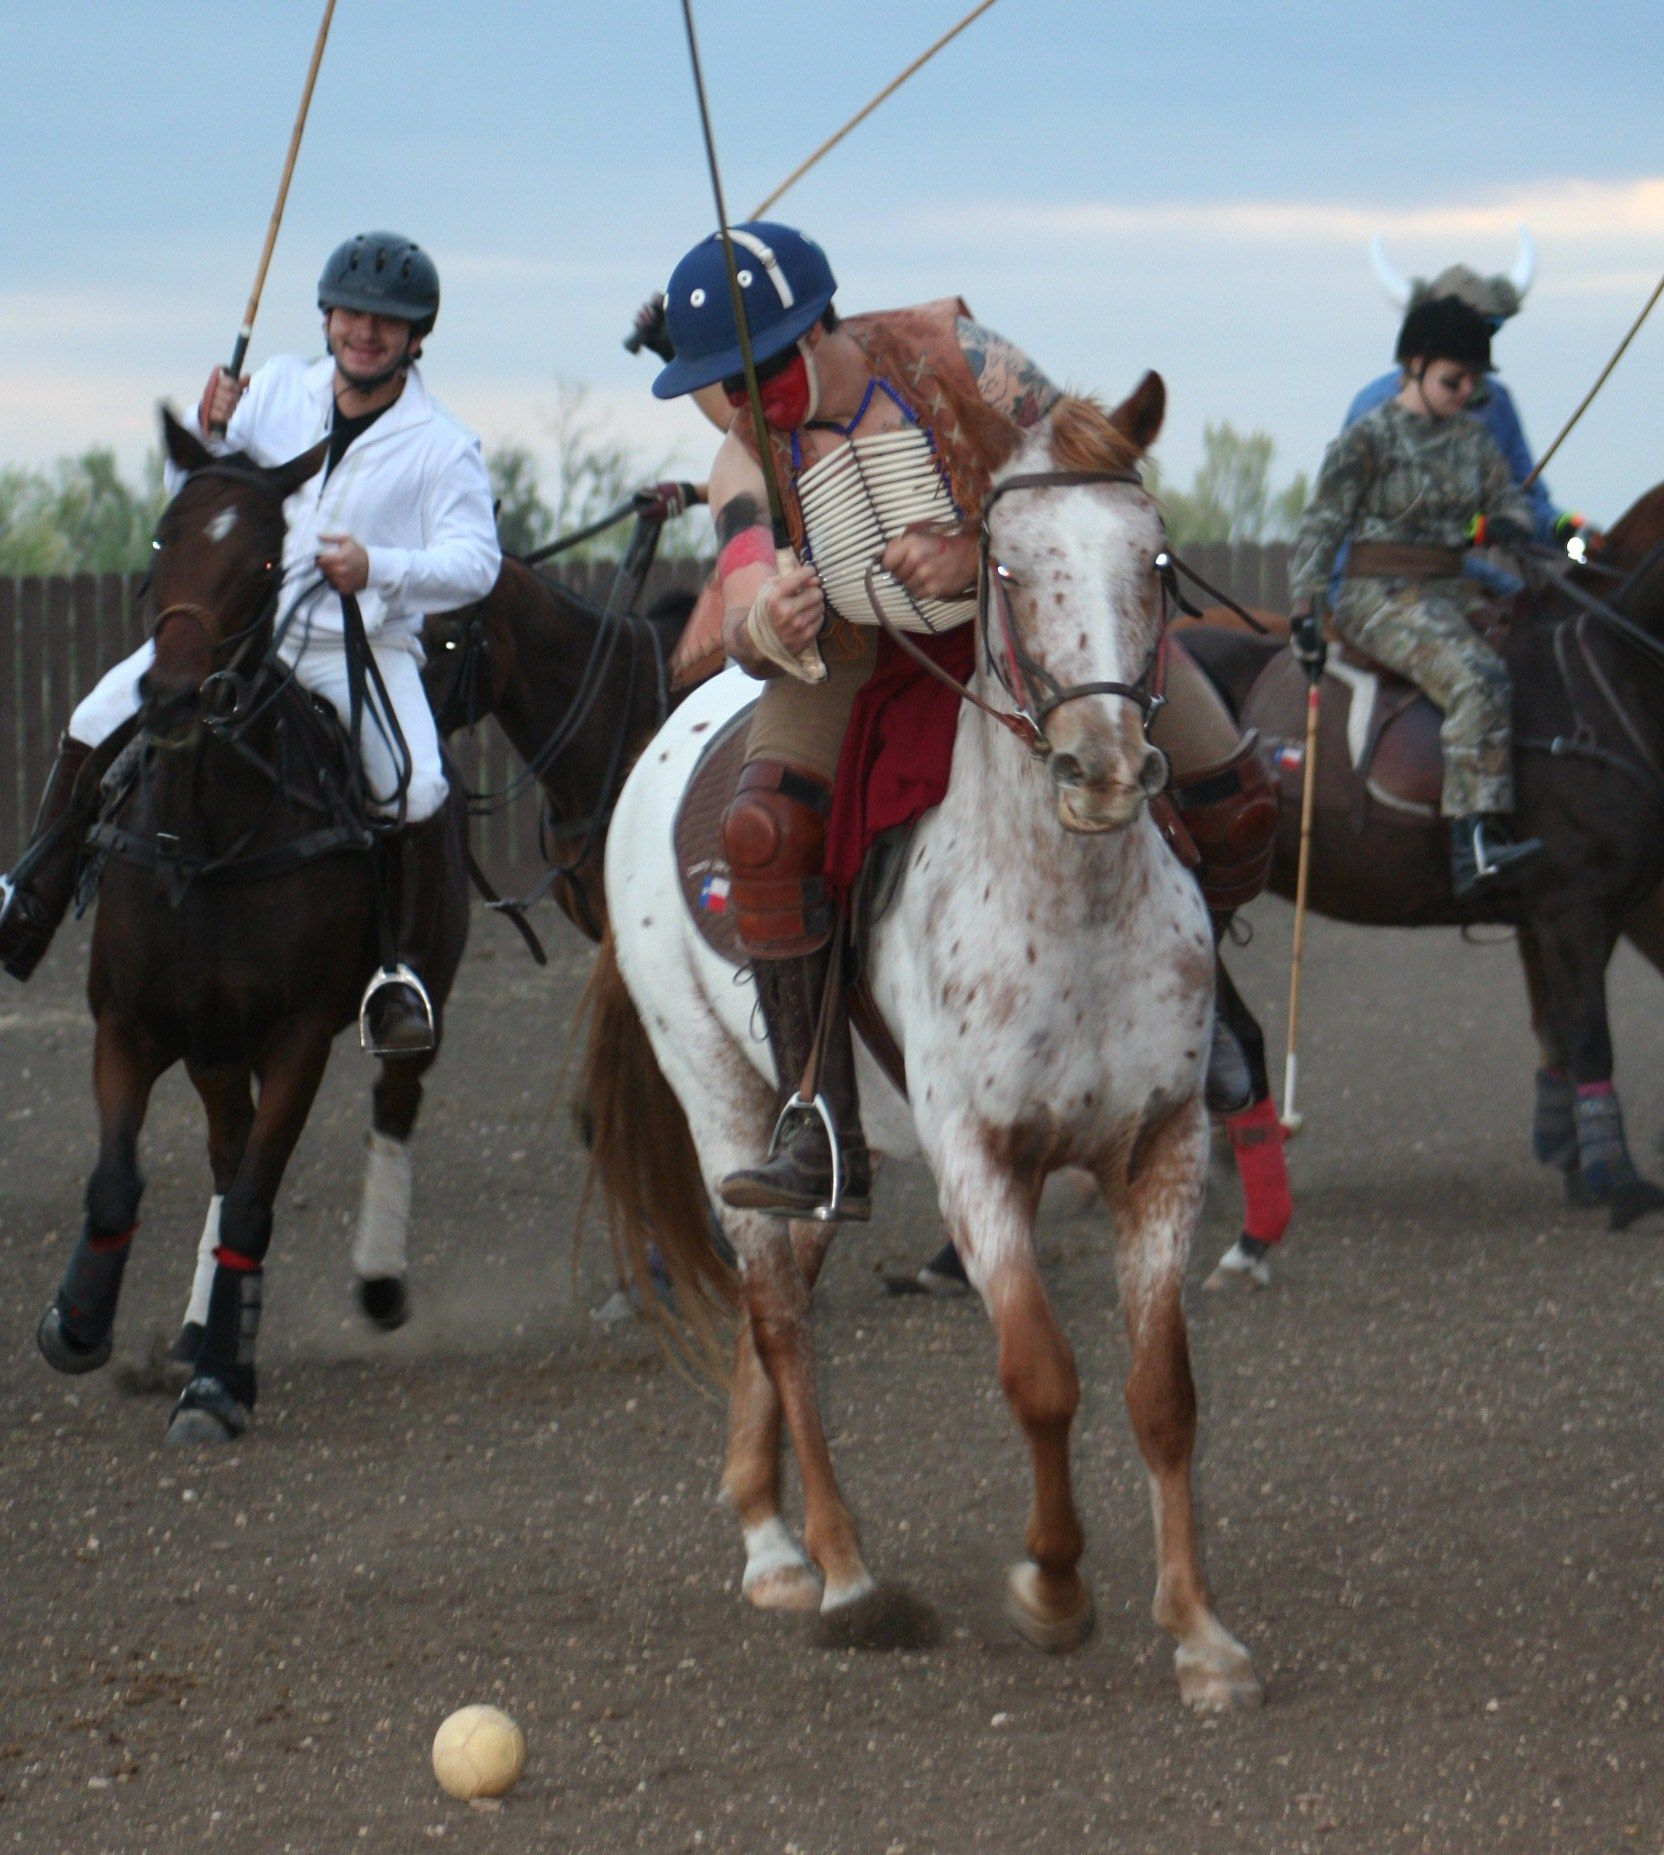 Indian Chief James on new polo pony Pancho during costumed match in Texas.Photo taken by Diane Goforth Bray.